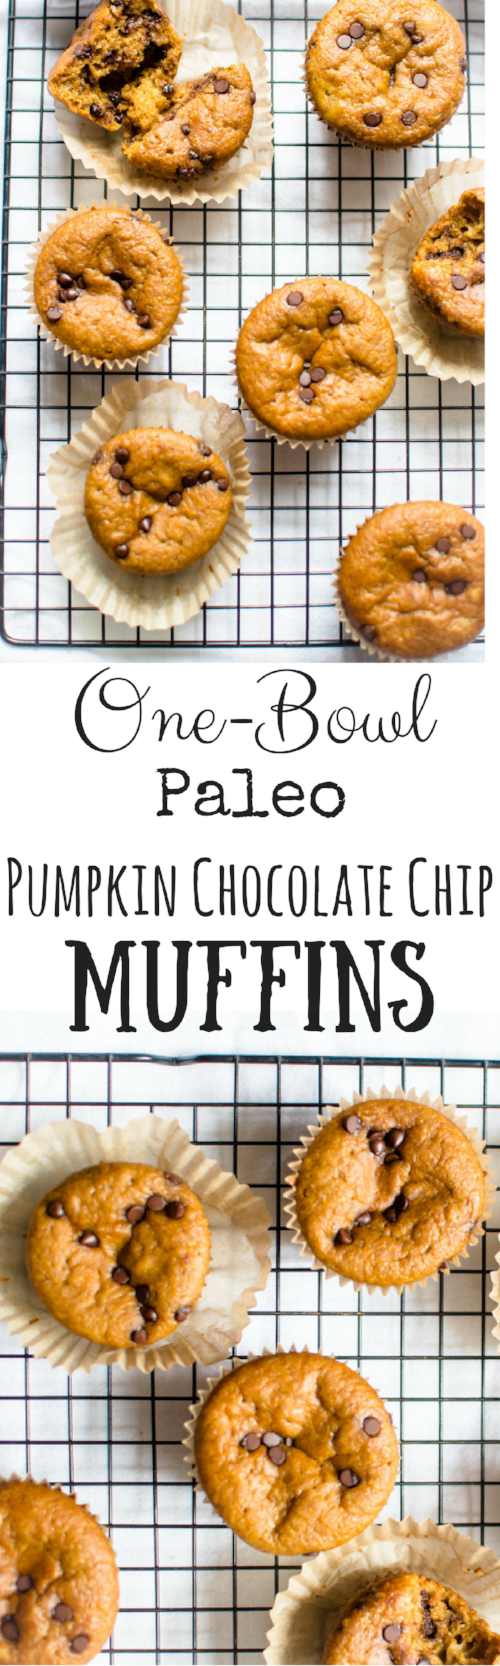 One-Bowl Paleo Pumpkin Chocolate Chip Muffins